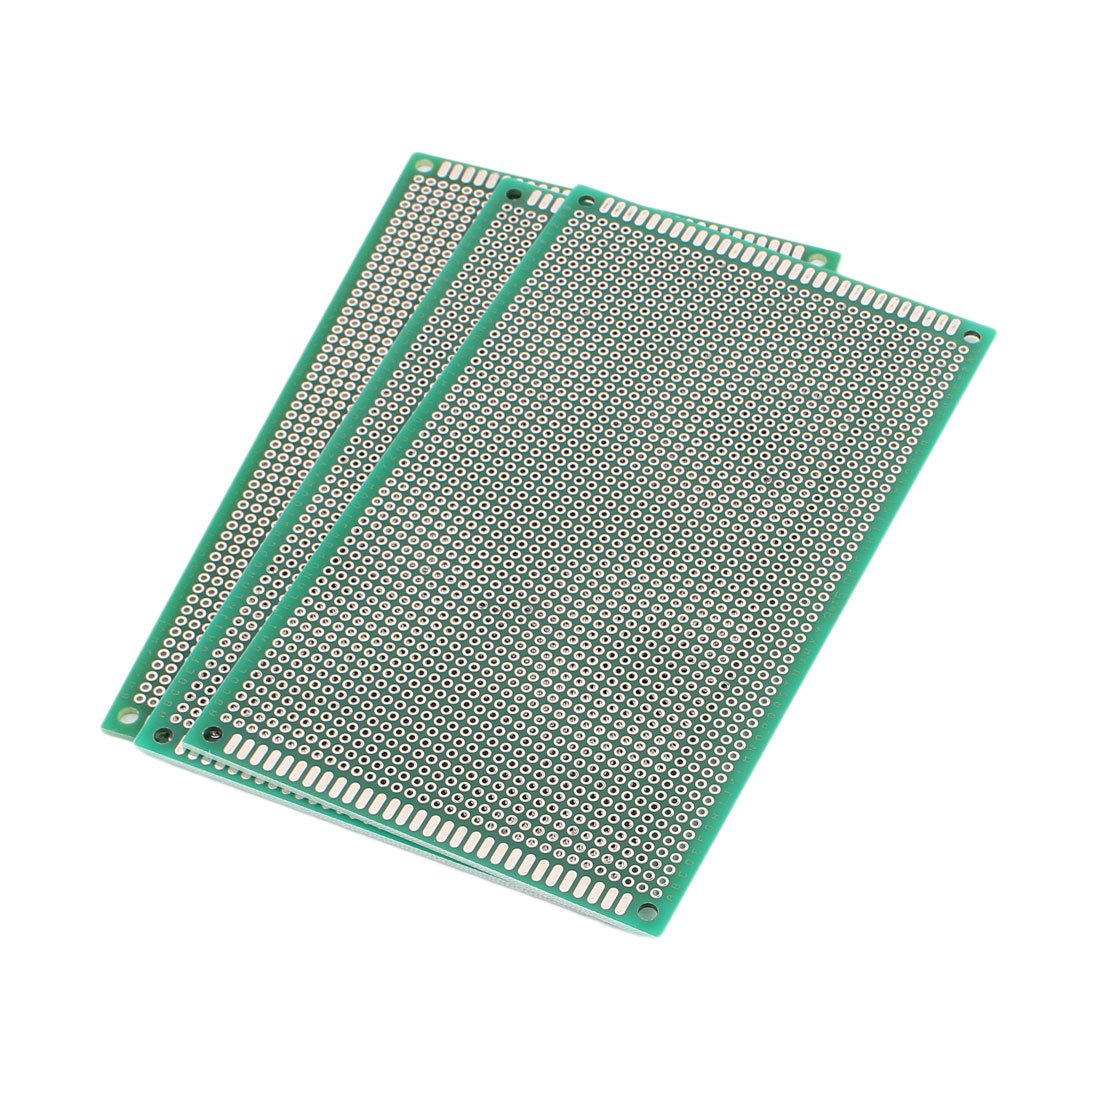 Cheap Pcb Print Circuit Board Find Deals On Assembly Pcba Production Buy Productioncircuit Get Quotations Uxcell A16040500ux0190 3 Piece Double Sided Prototype Universal 9 X 15 Cm